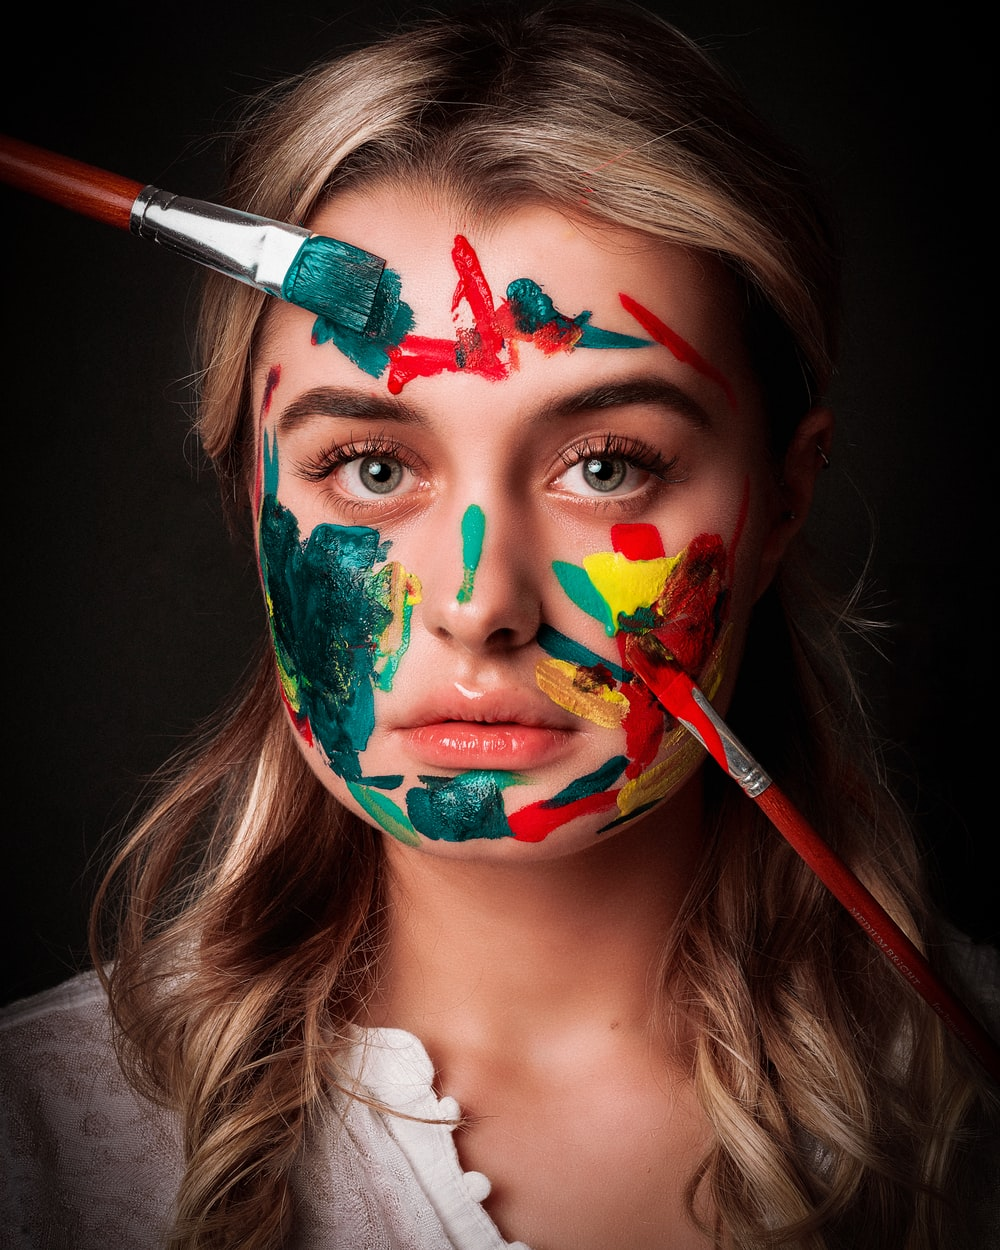 woman with red green and yellow face paint